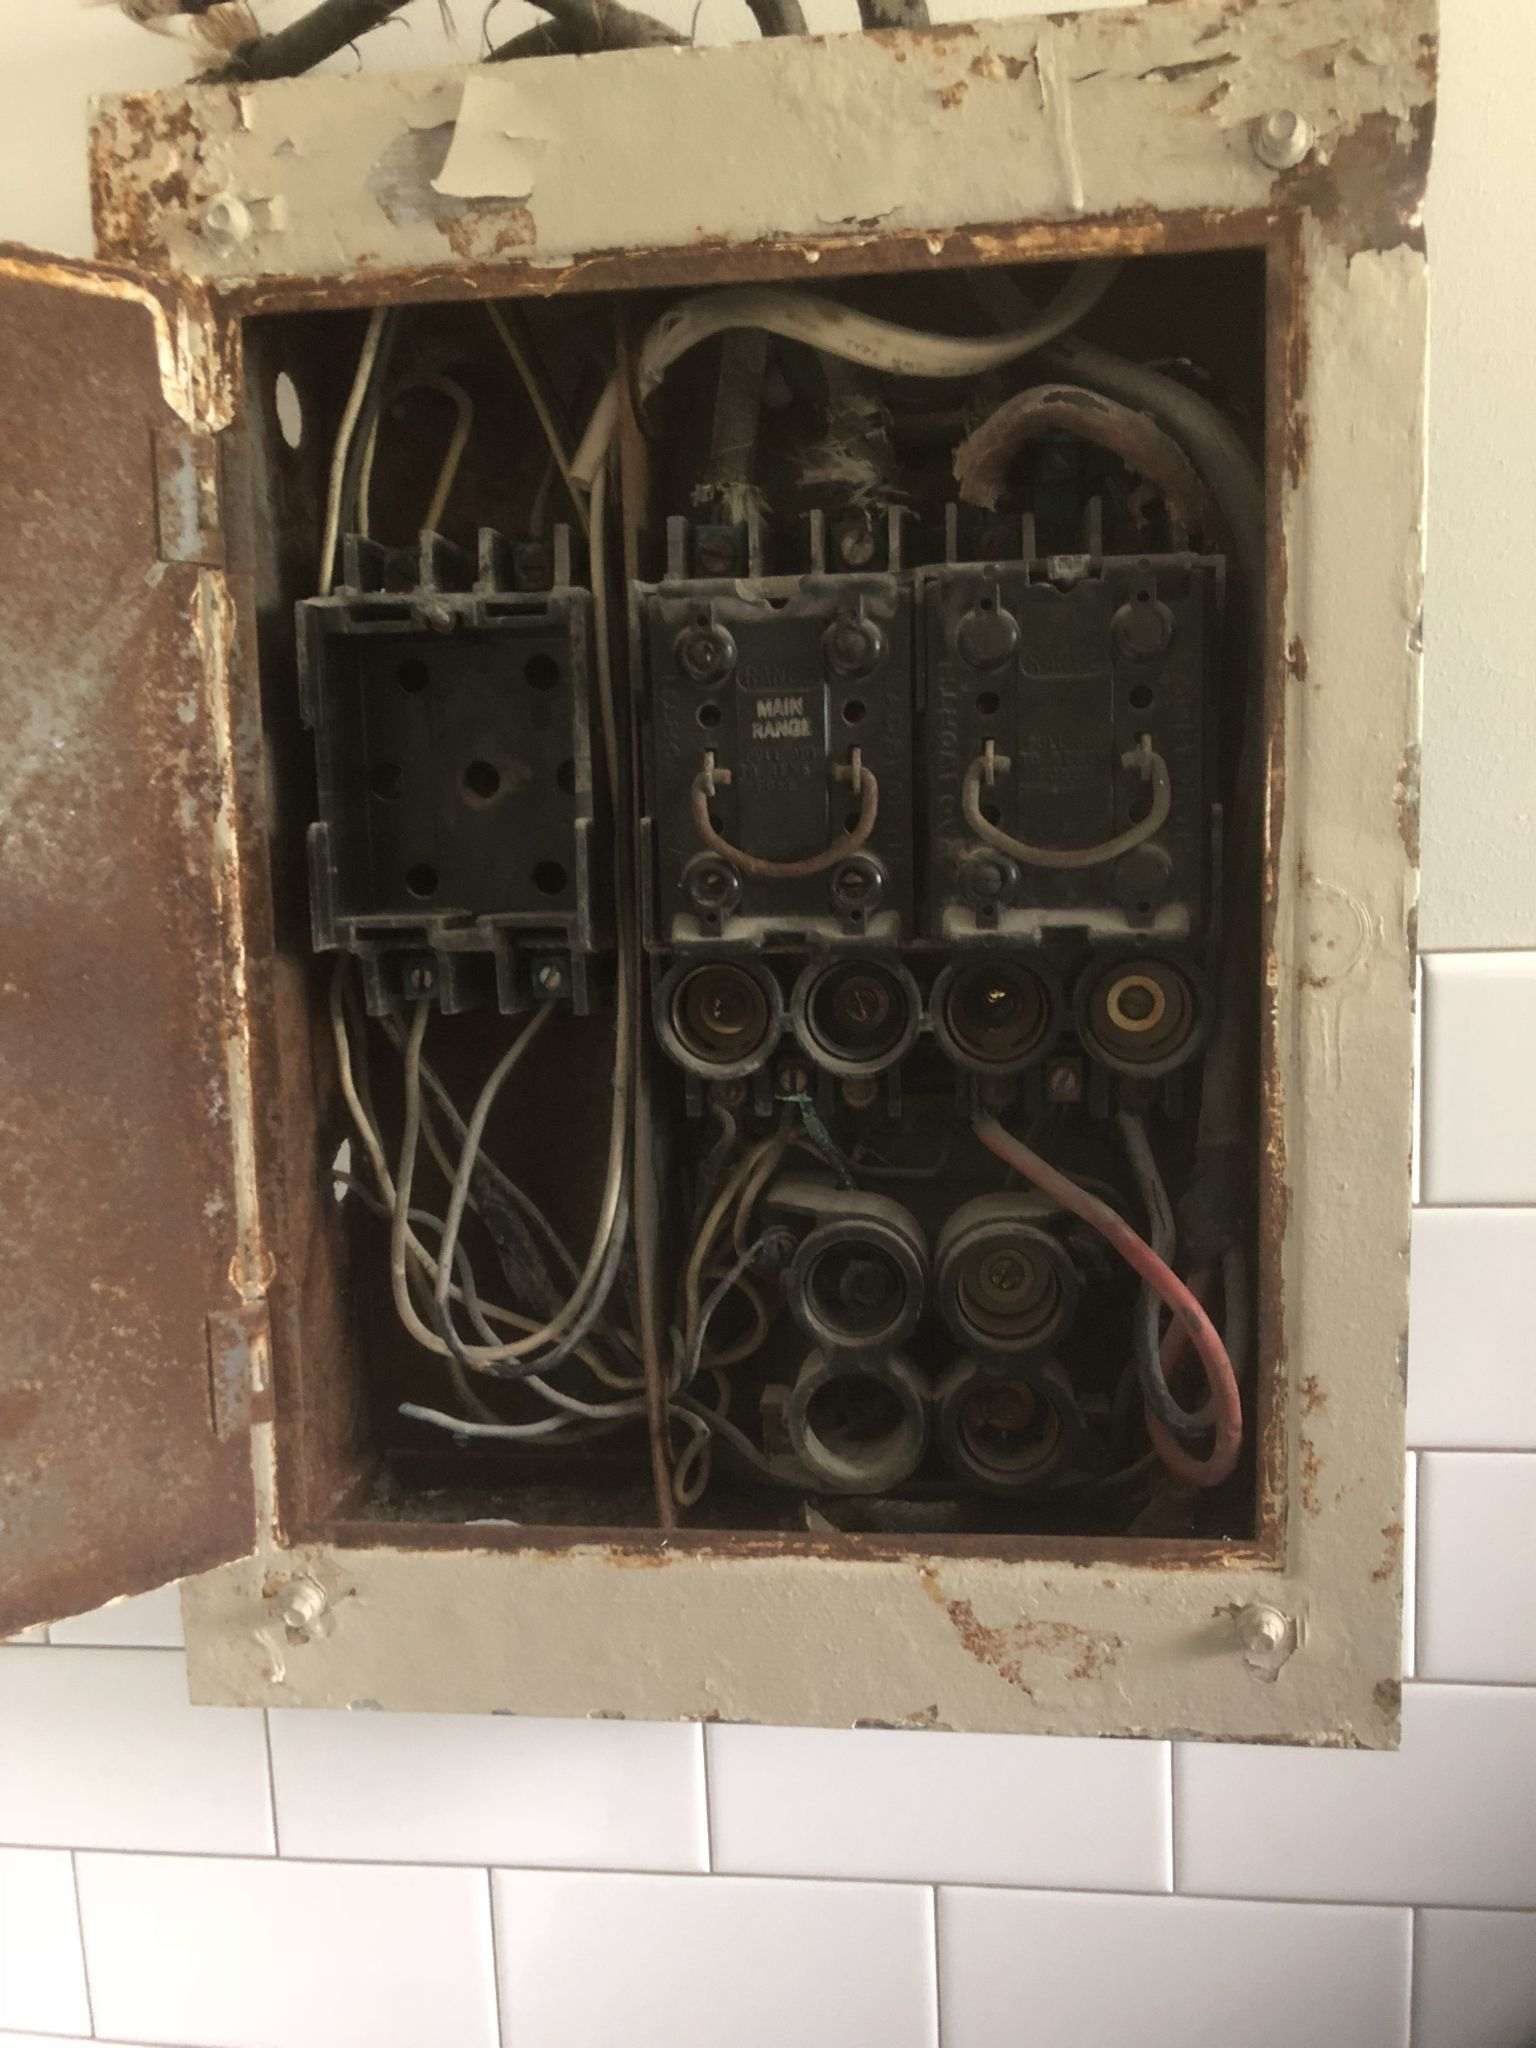 Reduce The Risk Of Fire In Your Home Upgrade Electrical Panel Wiring Box